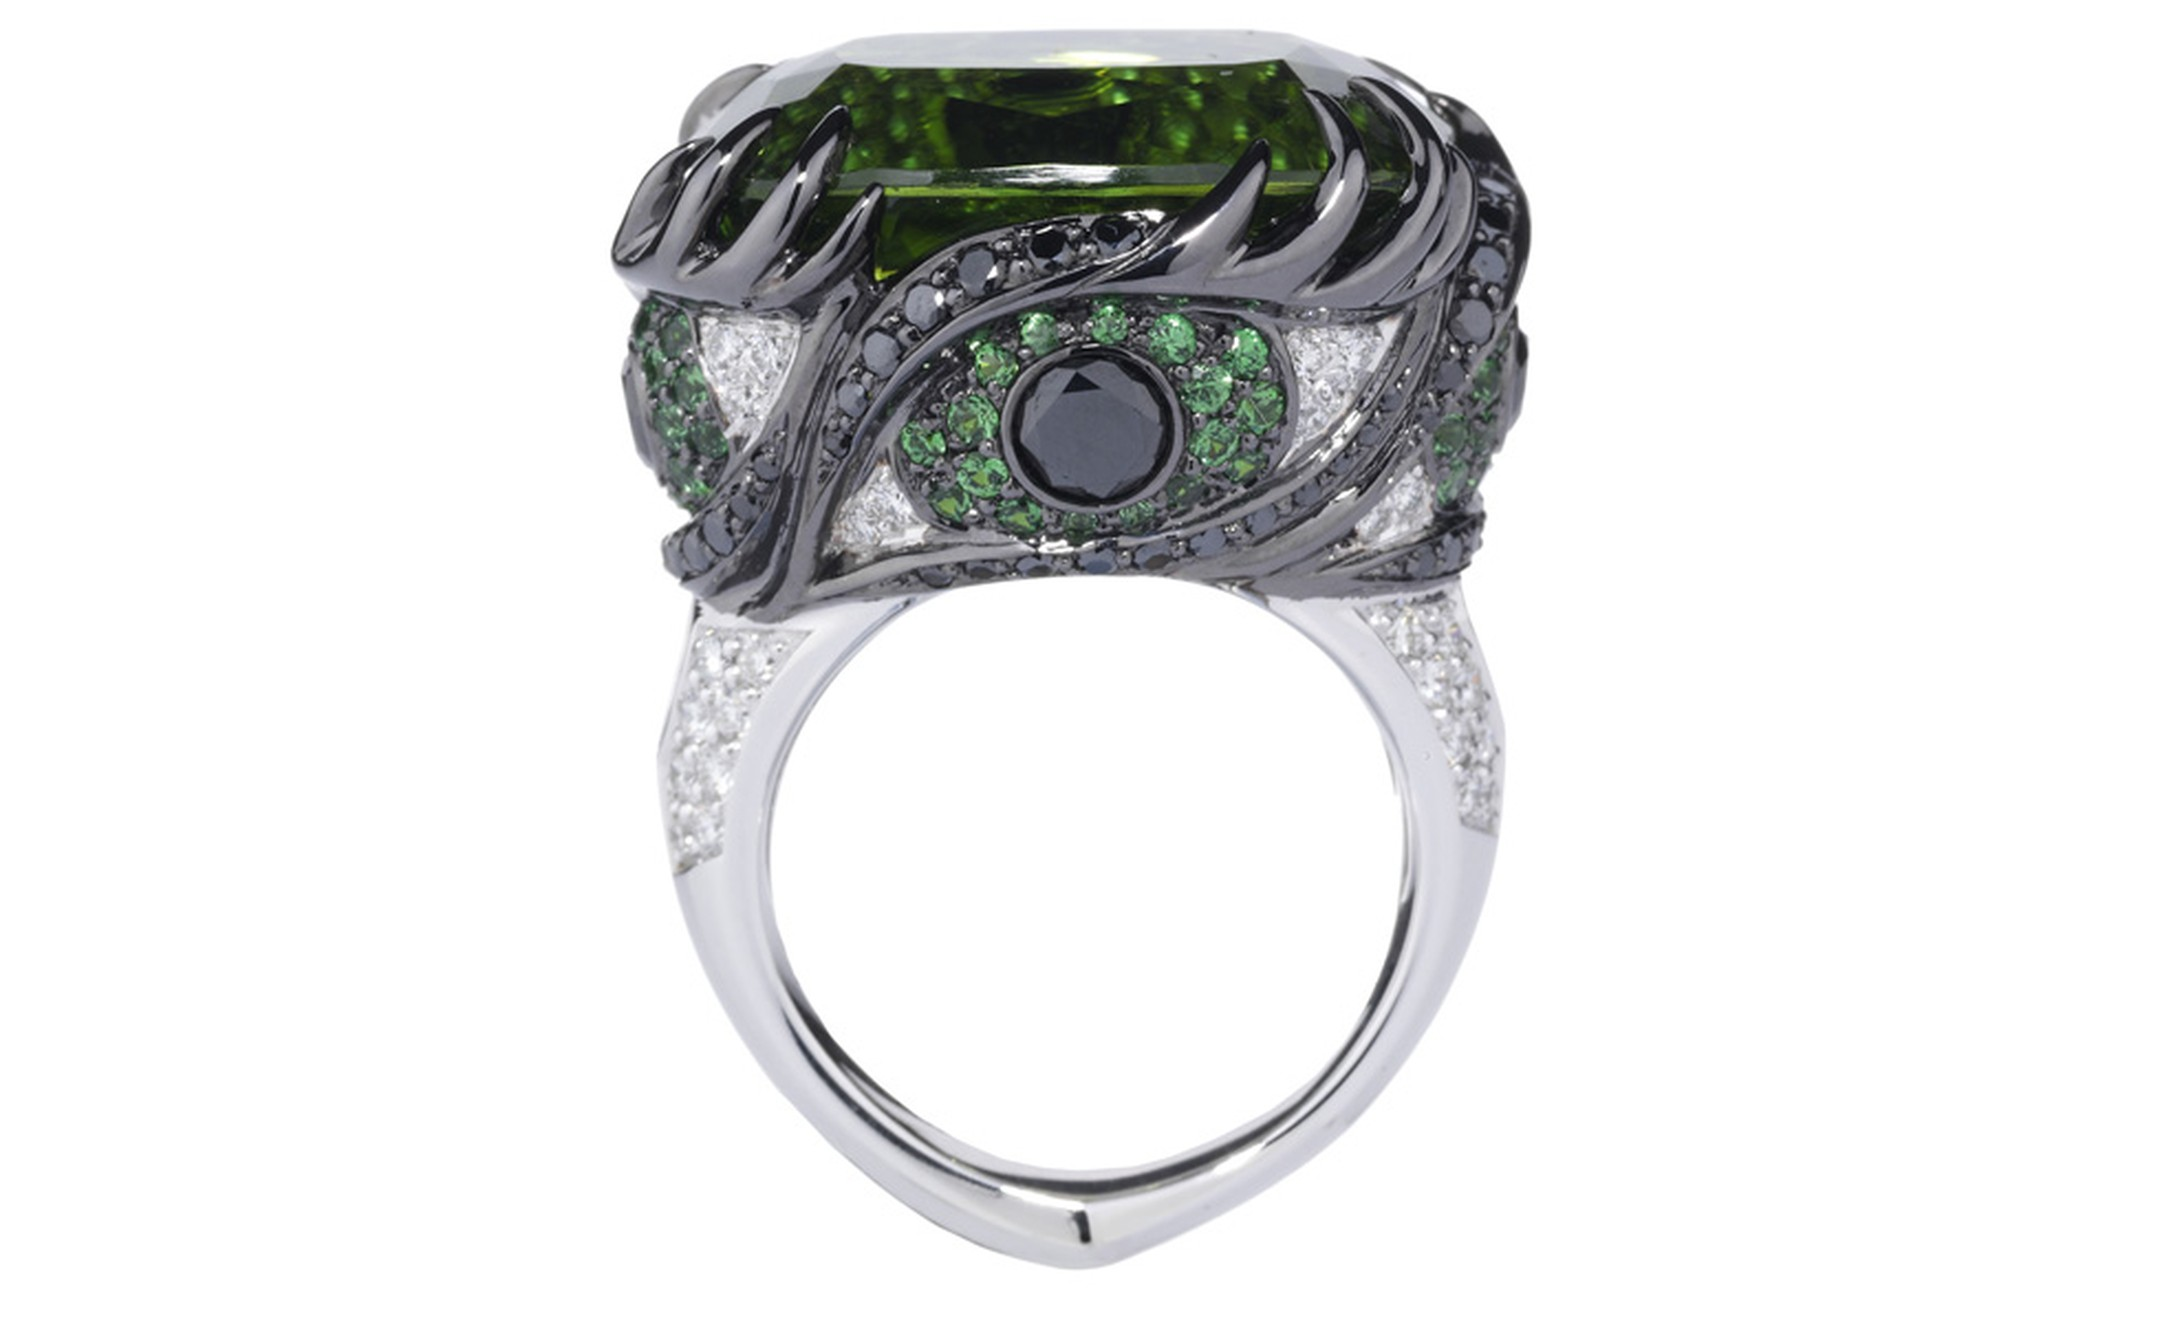 Stephen Webster Seven Deadly Sins Envy ring - of course this one had to be green